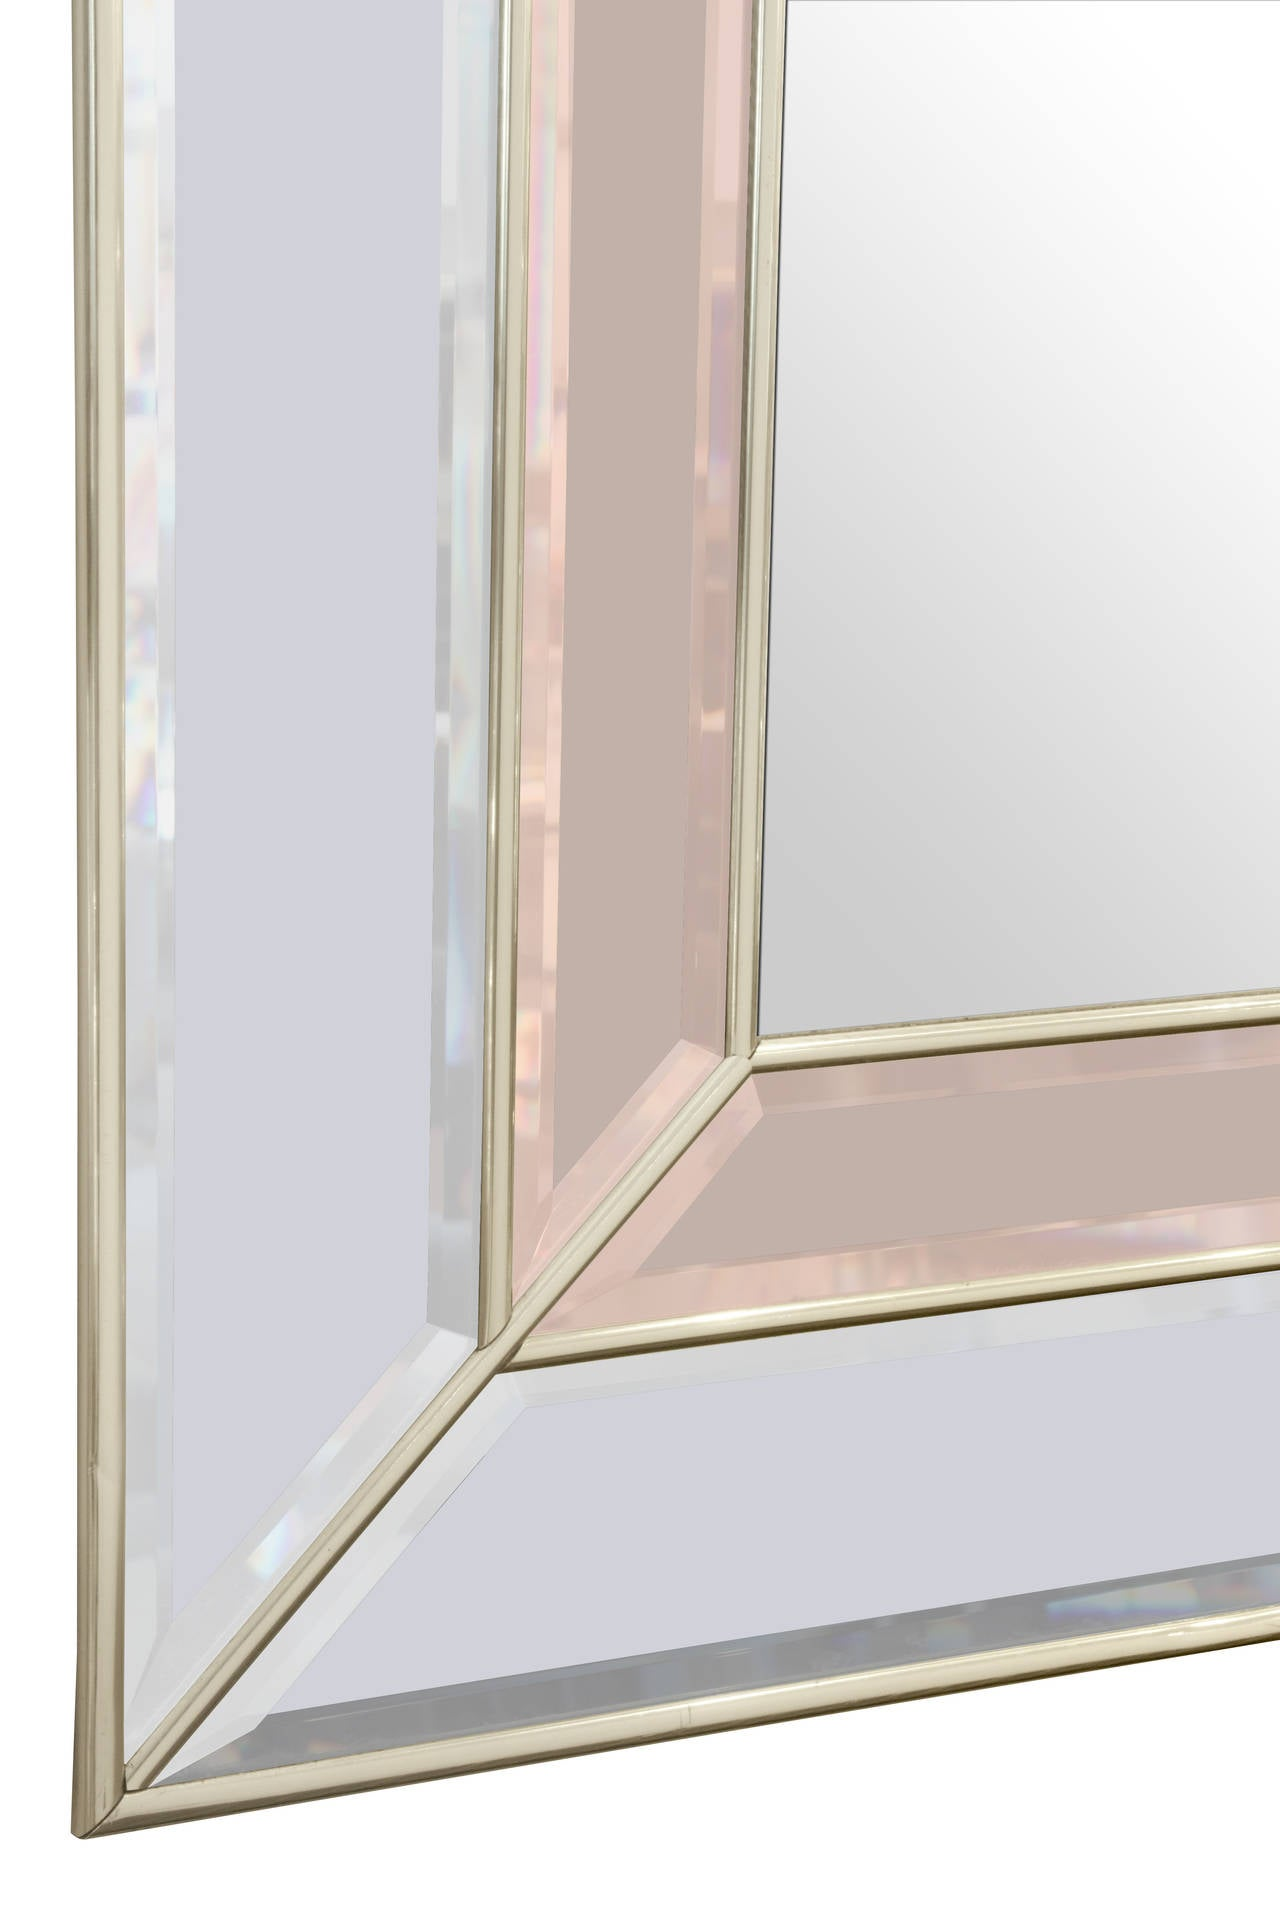 Art Deco Style Mirror Art Deco Style Mirror With Clear And Champagne Tinted Mirrored Panels